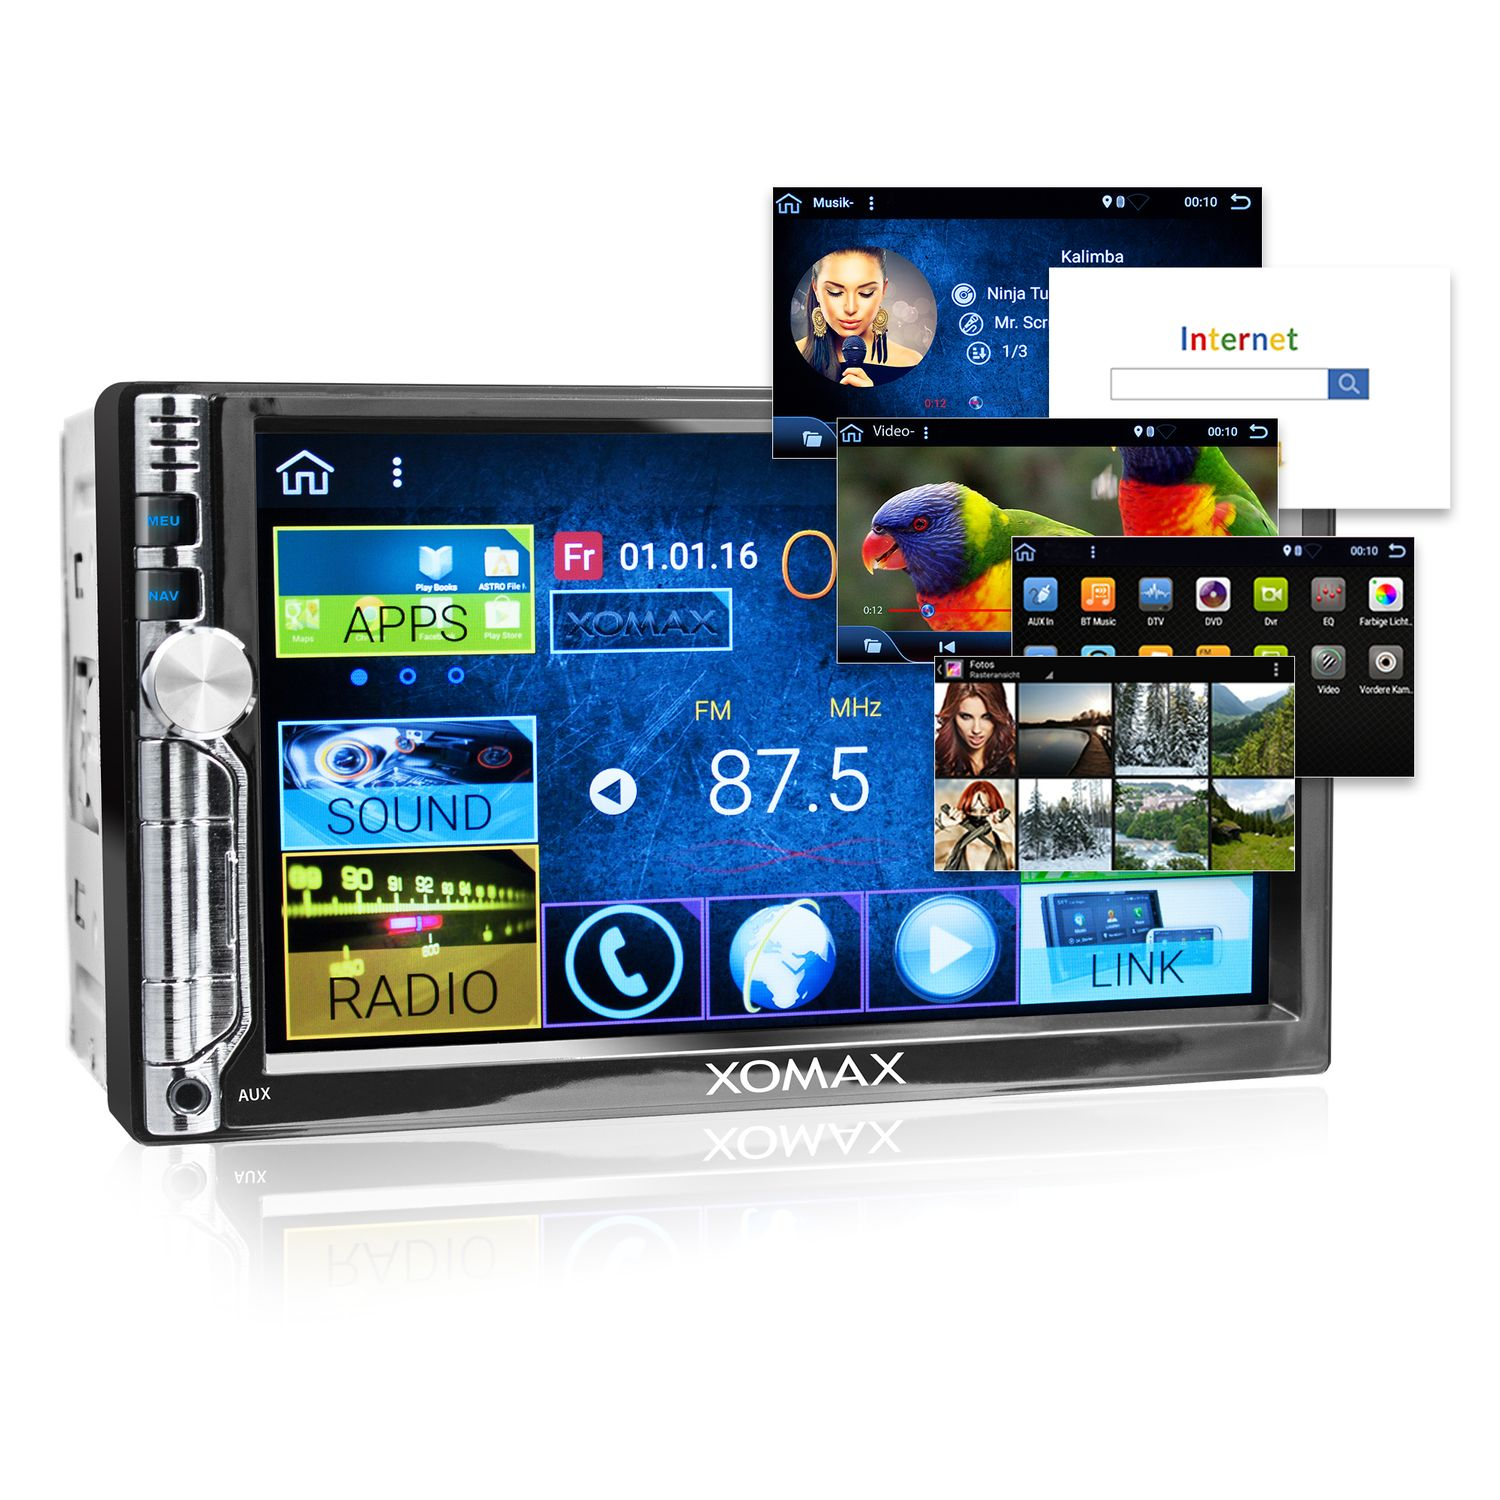 xomax xm 2va706 2din autoradio mit android 6 0 1 navi 7 zoll touchscreen monitor bluetooth. Black Bedroom Furniture Sets. Home Design Ideas